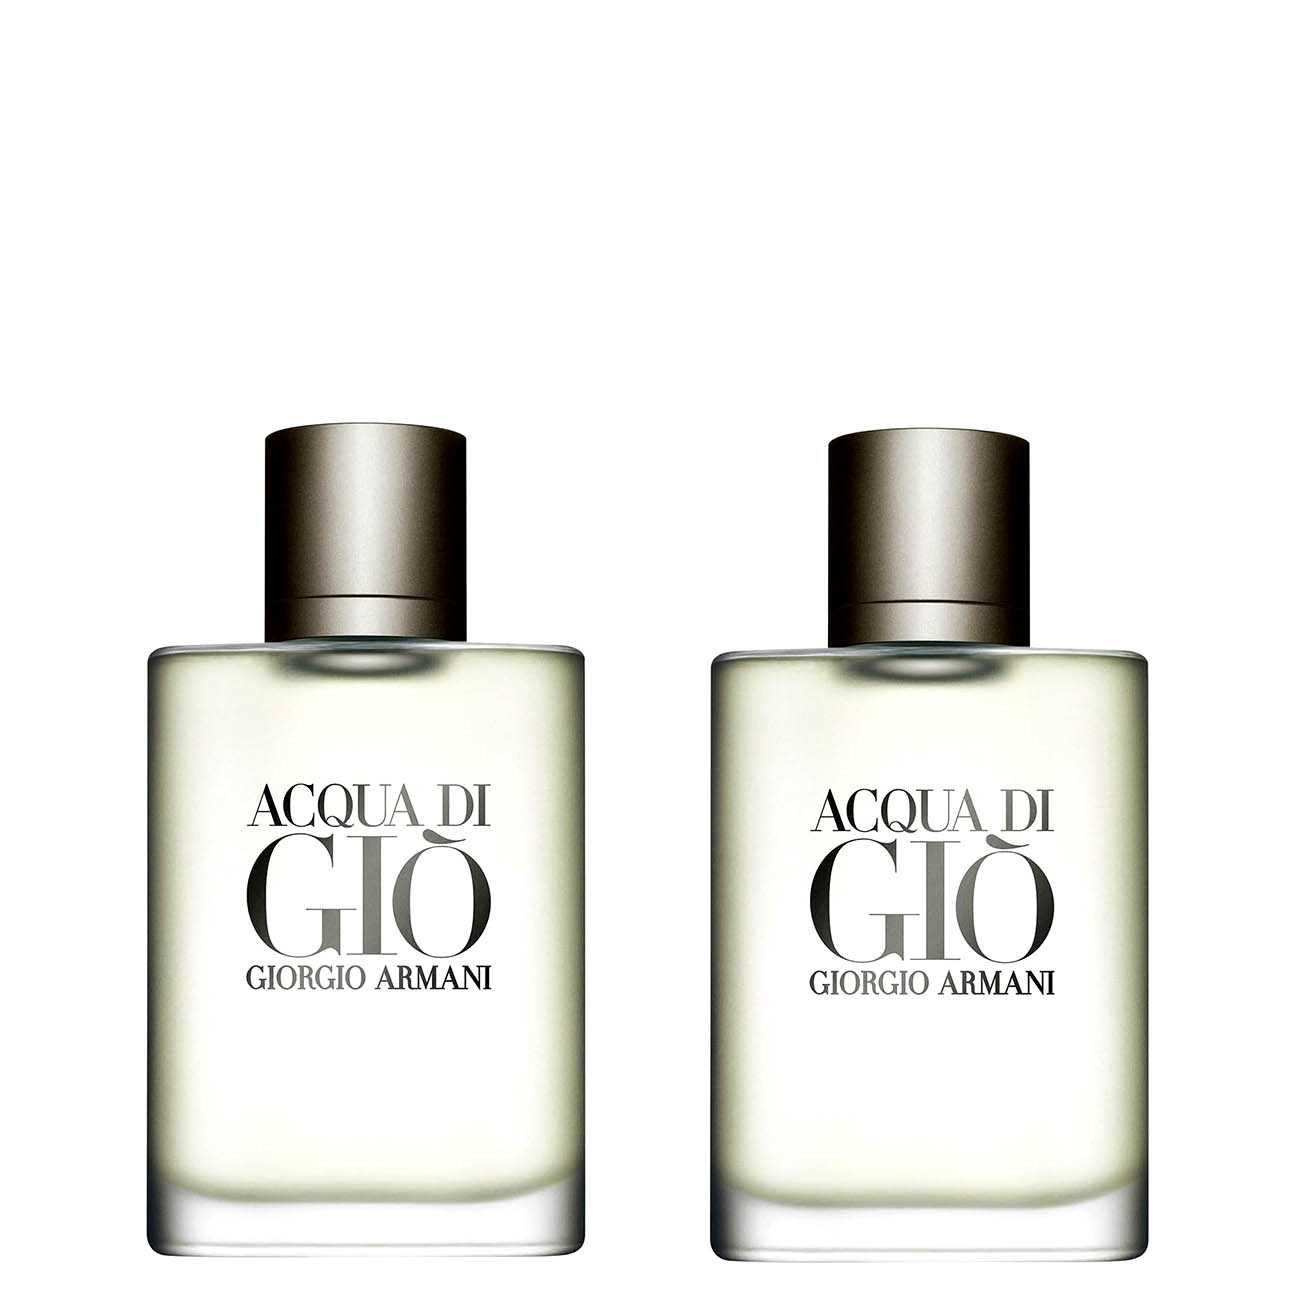 ACQUA DI GIO 60 ML 60ml imagine produs